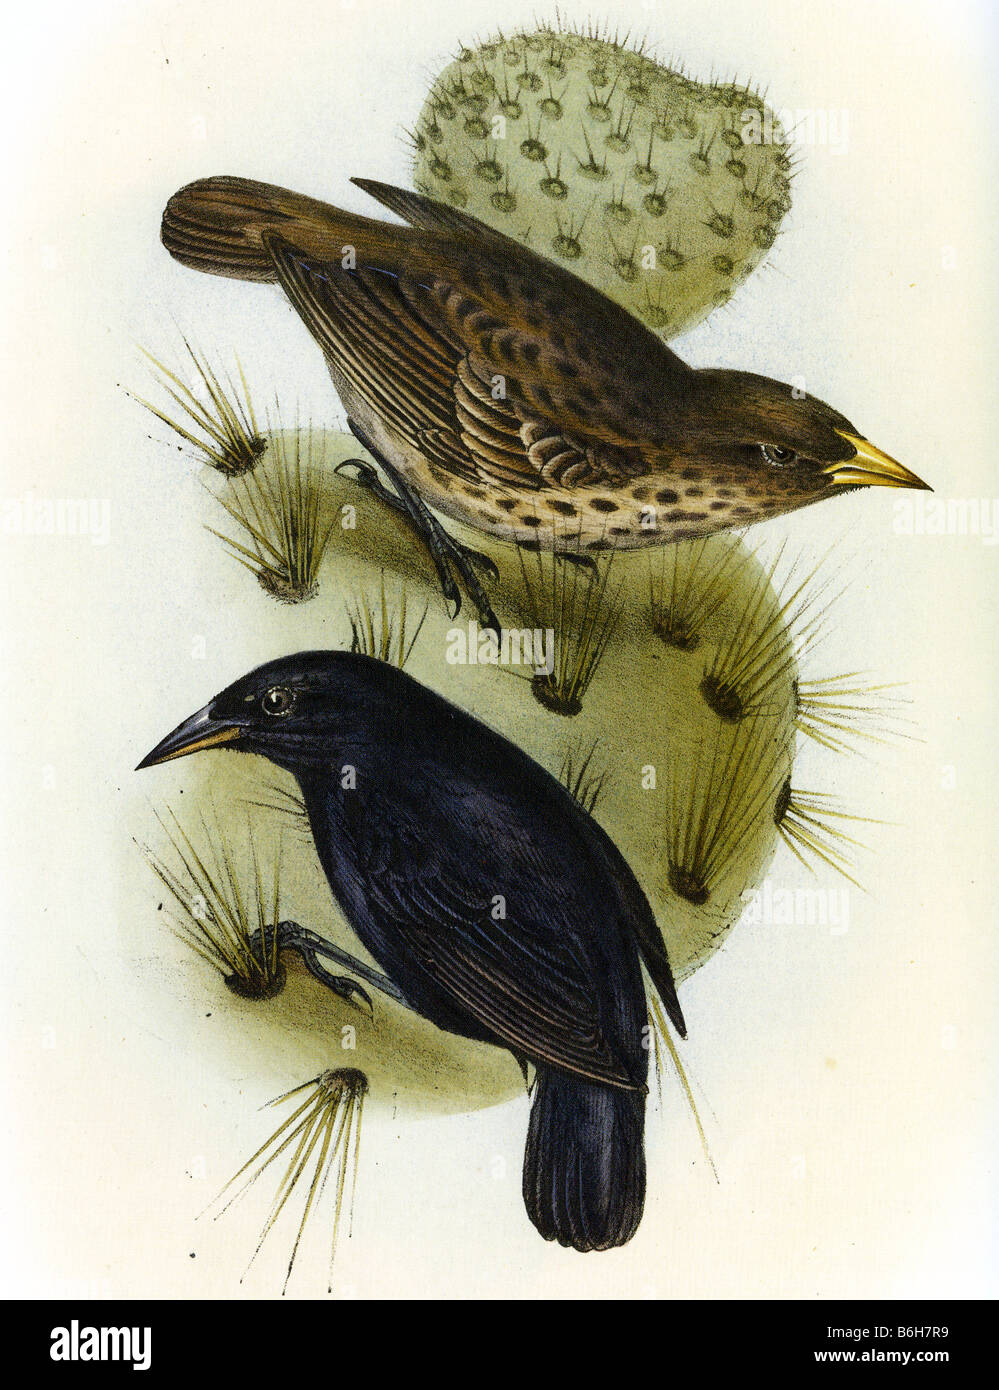 THE ZOOLOGY OF THE VOYAGE OF HMS BEAGLE Illustration of a pair of Cactus Finches by Elizabeth Gould - Stock Image